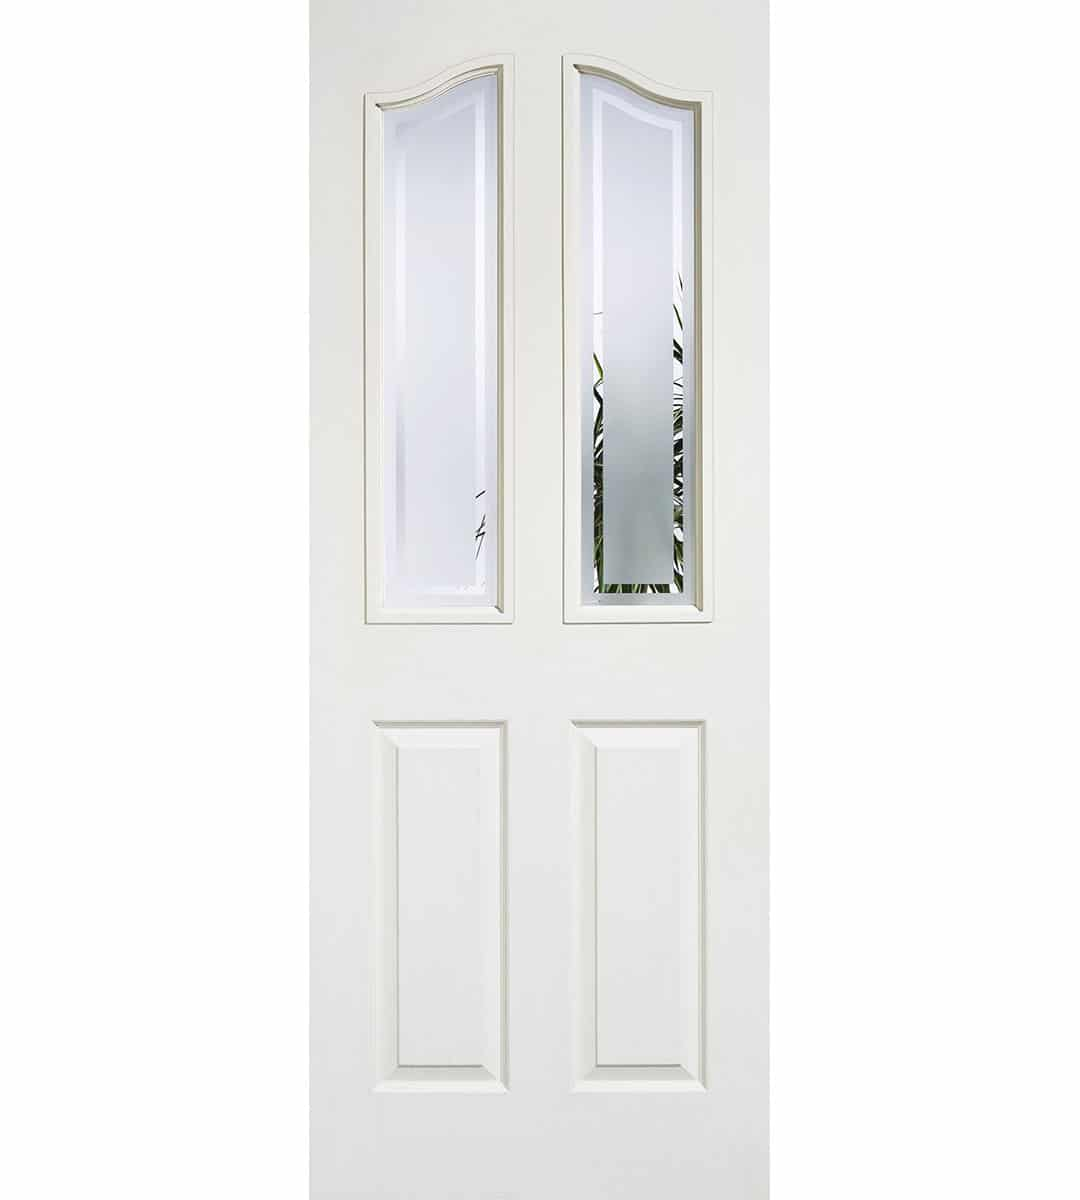 mayfair glazed interior white door